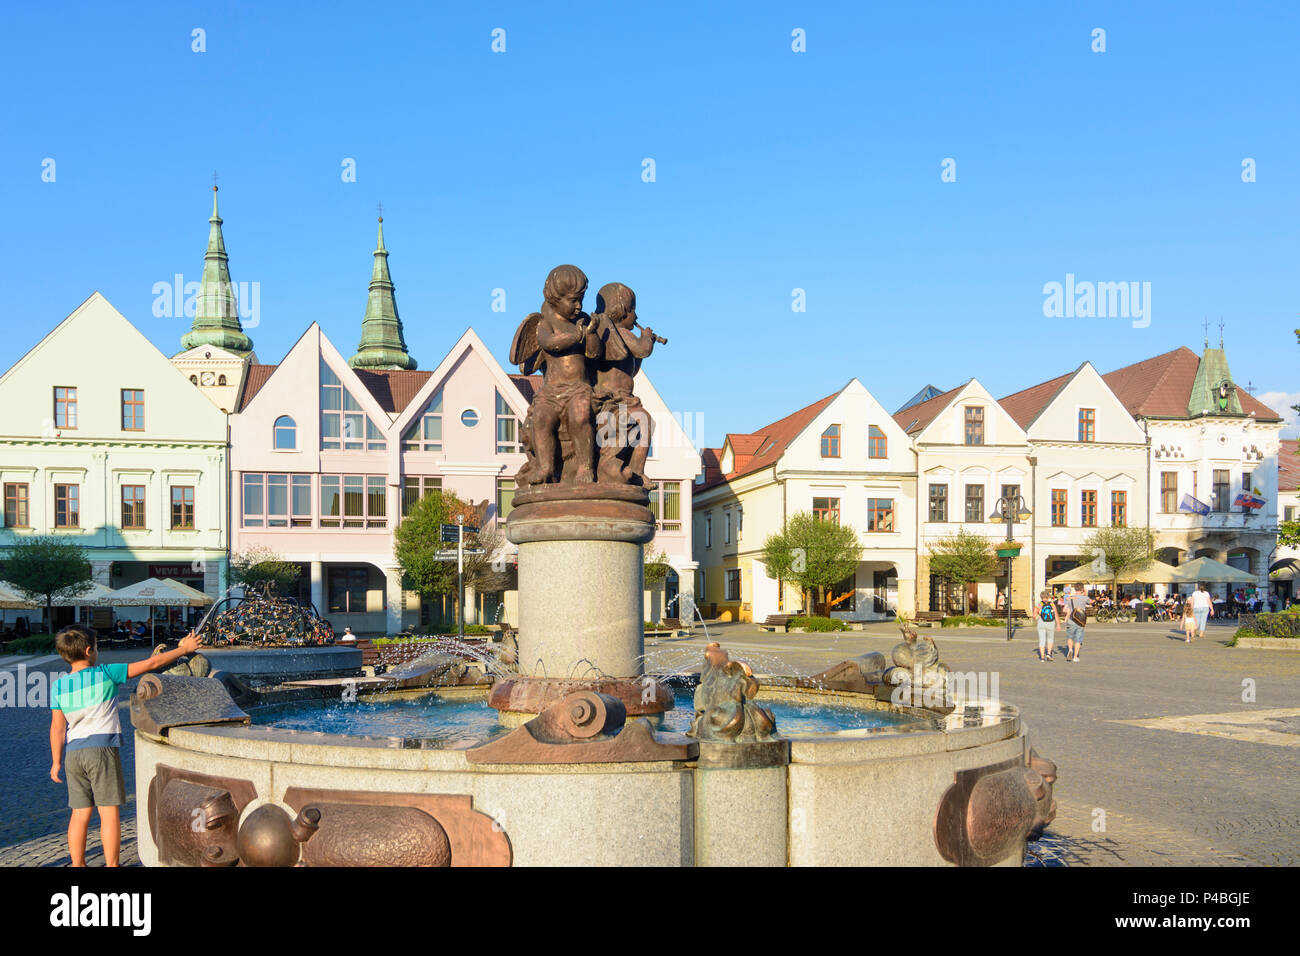 Zilina (Sillein, Silein), main square Marianske namestie with burgher houses, Slovakia - Stock Image